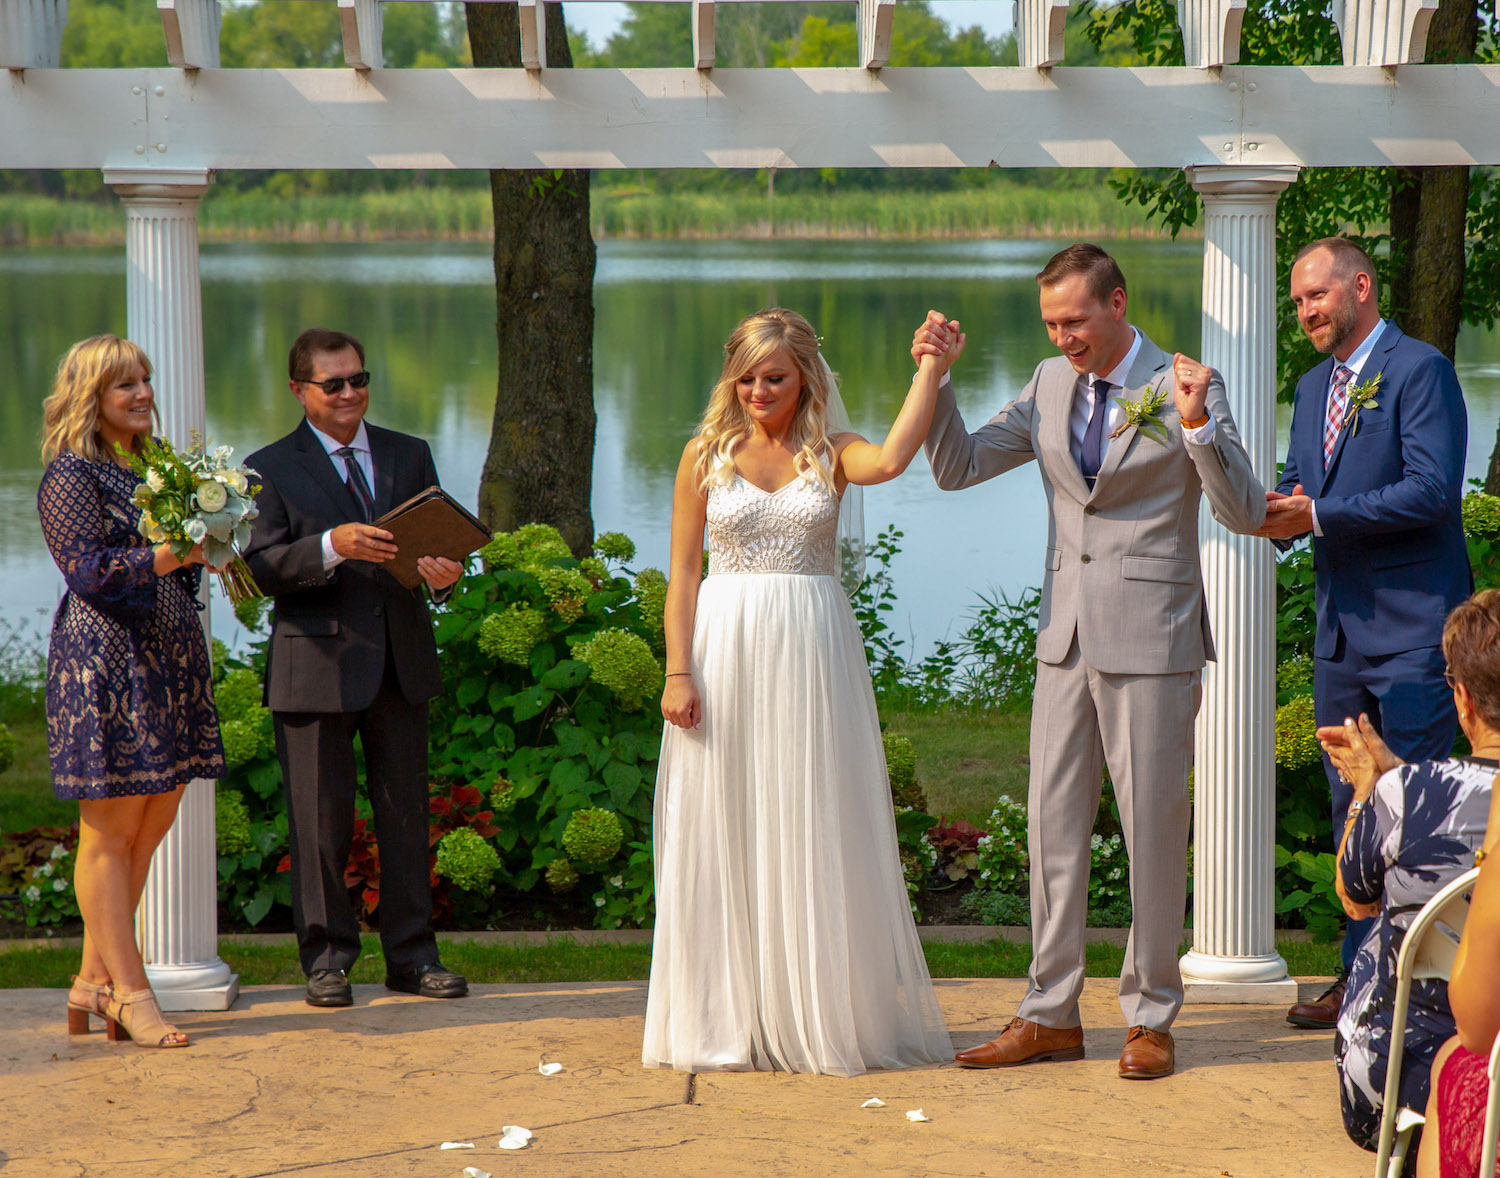 Cindyrellas Garden outdoor wedding ceremony by a private lake with wooded backdrops, just married